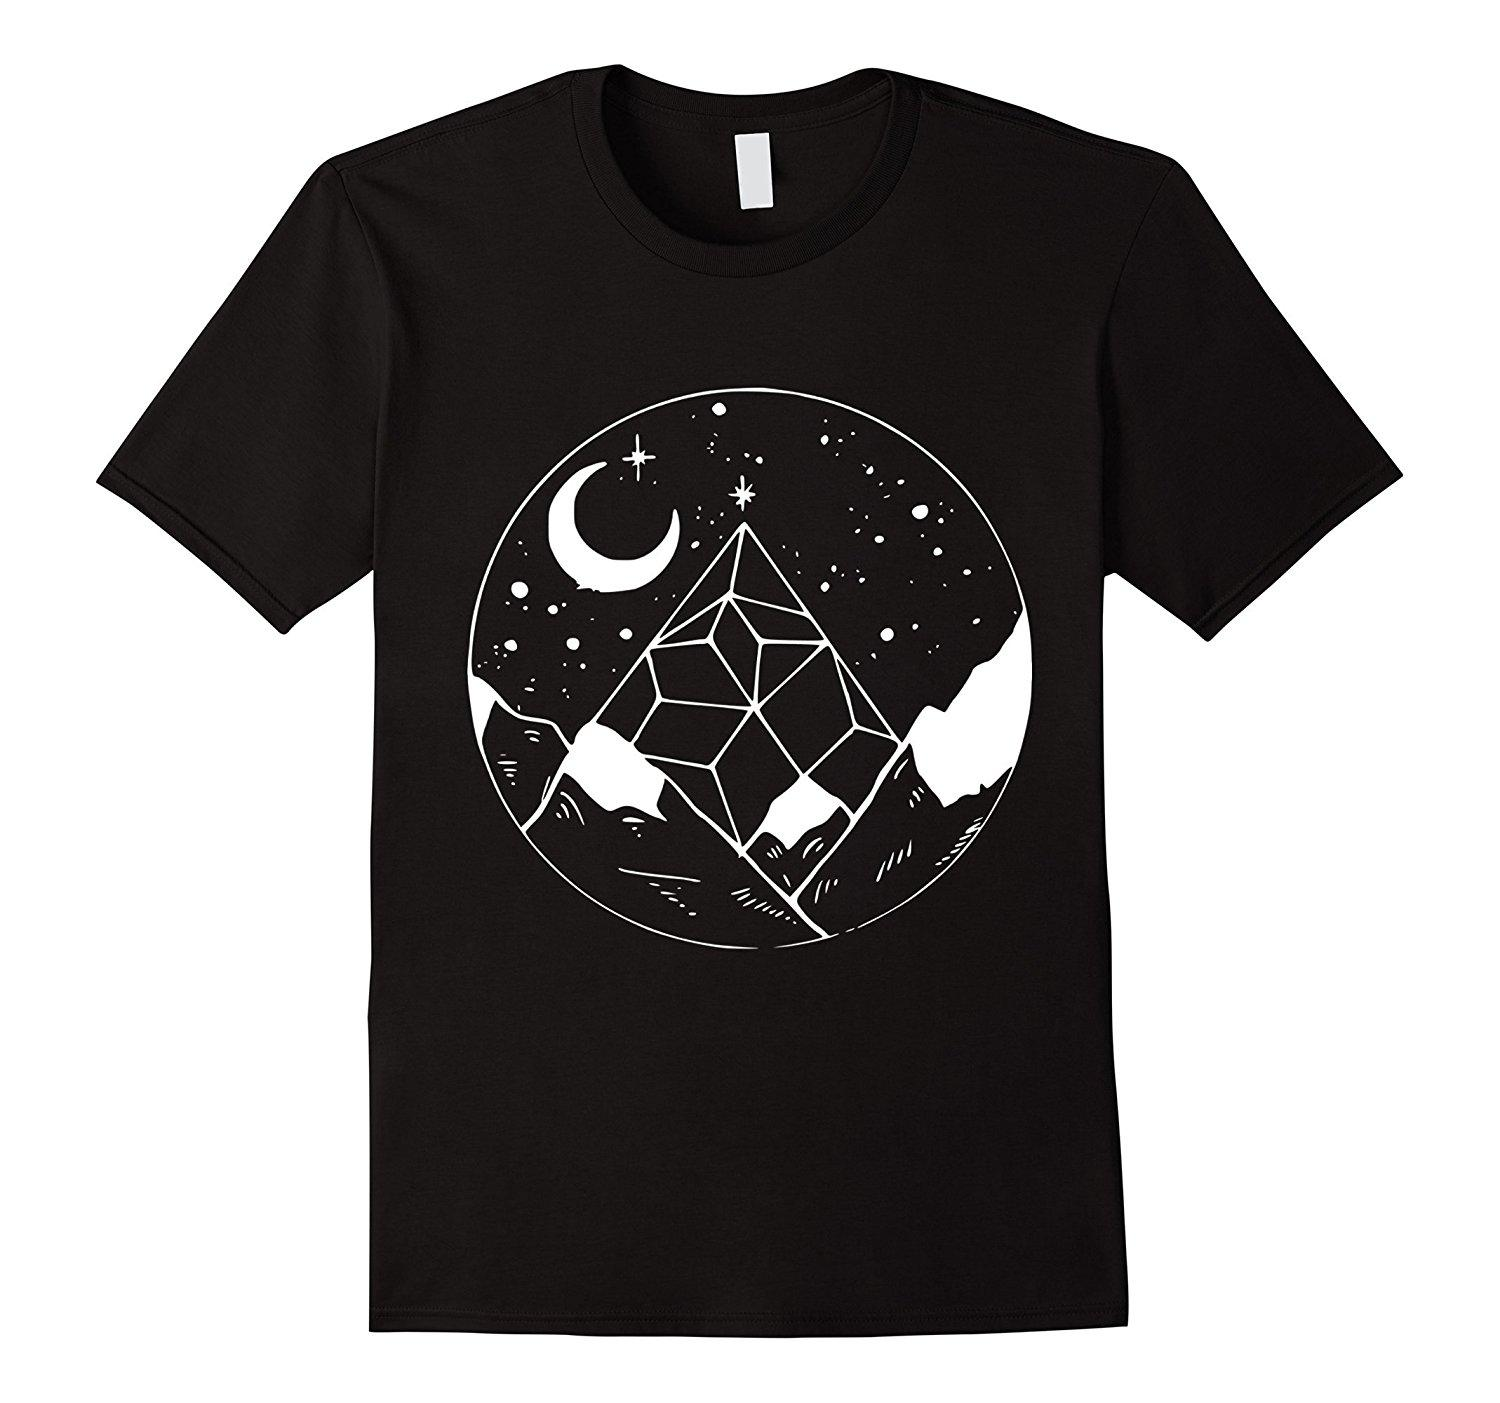 Stars Moon Mountain Landscape Geometric T Shirt Quirky T Shirt